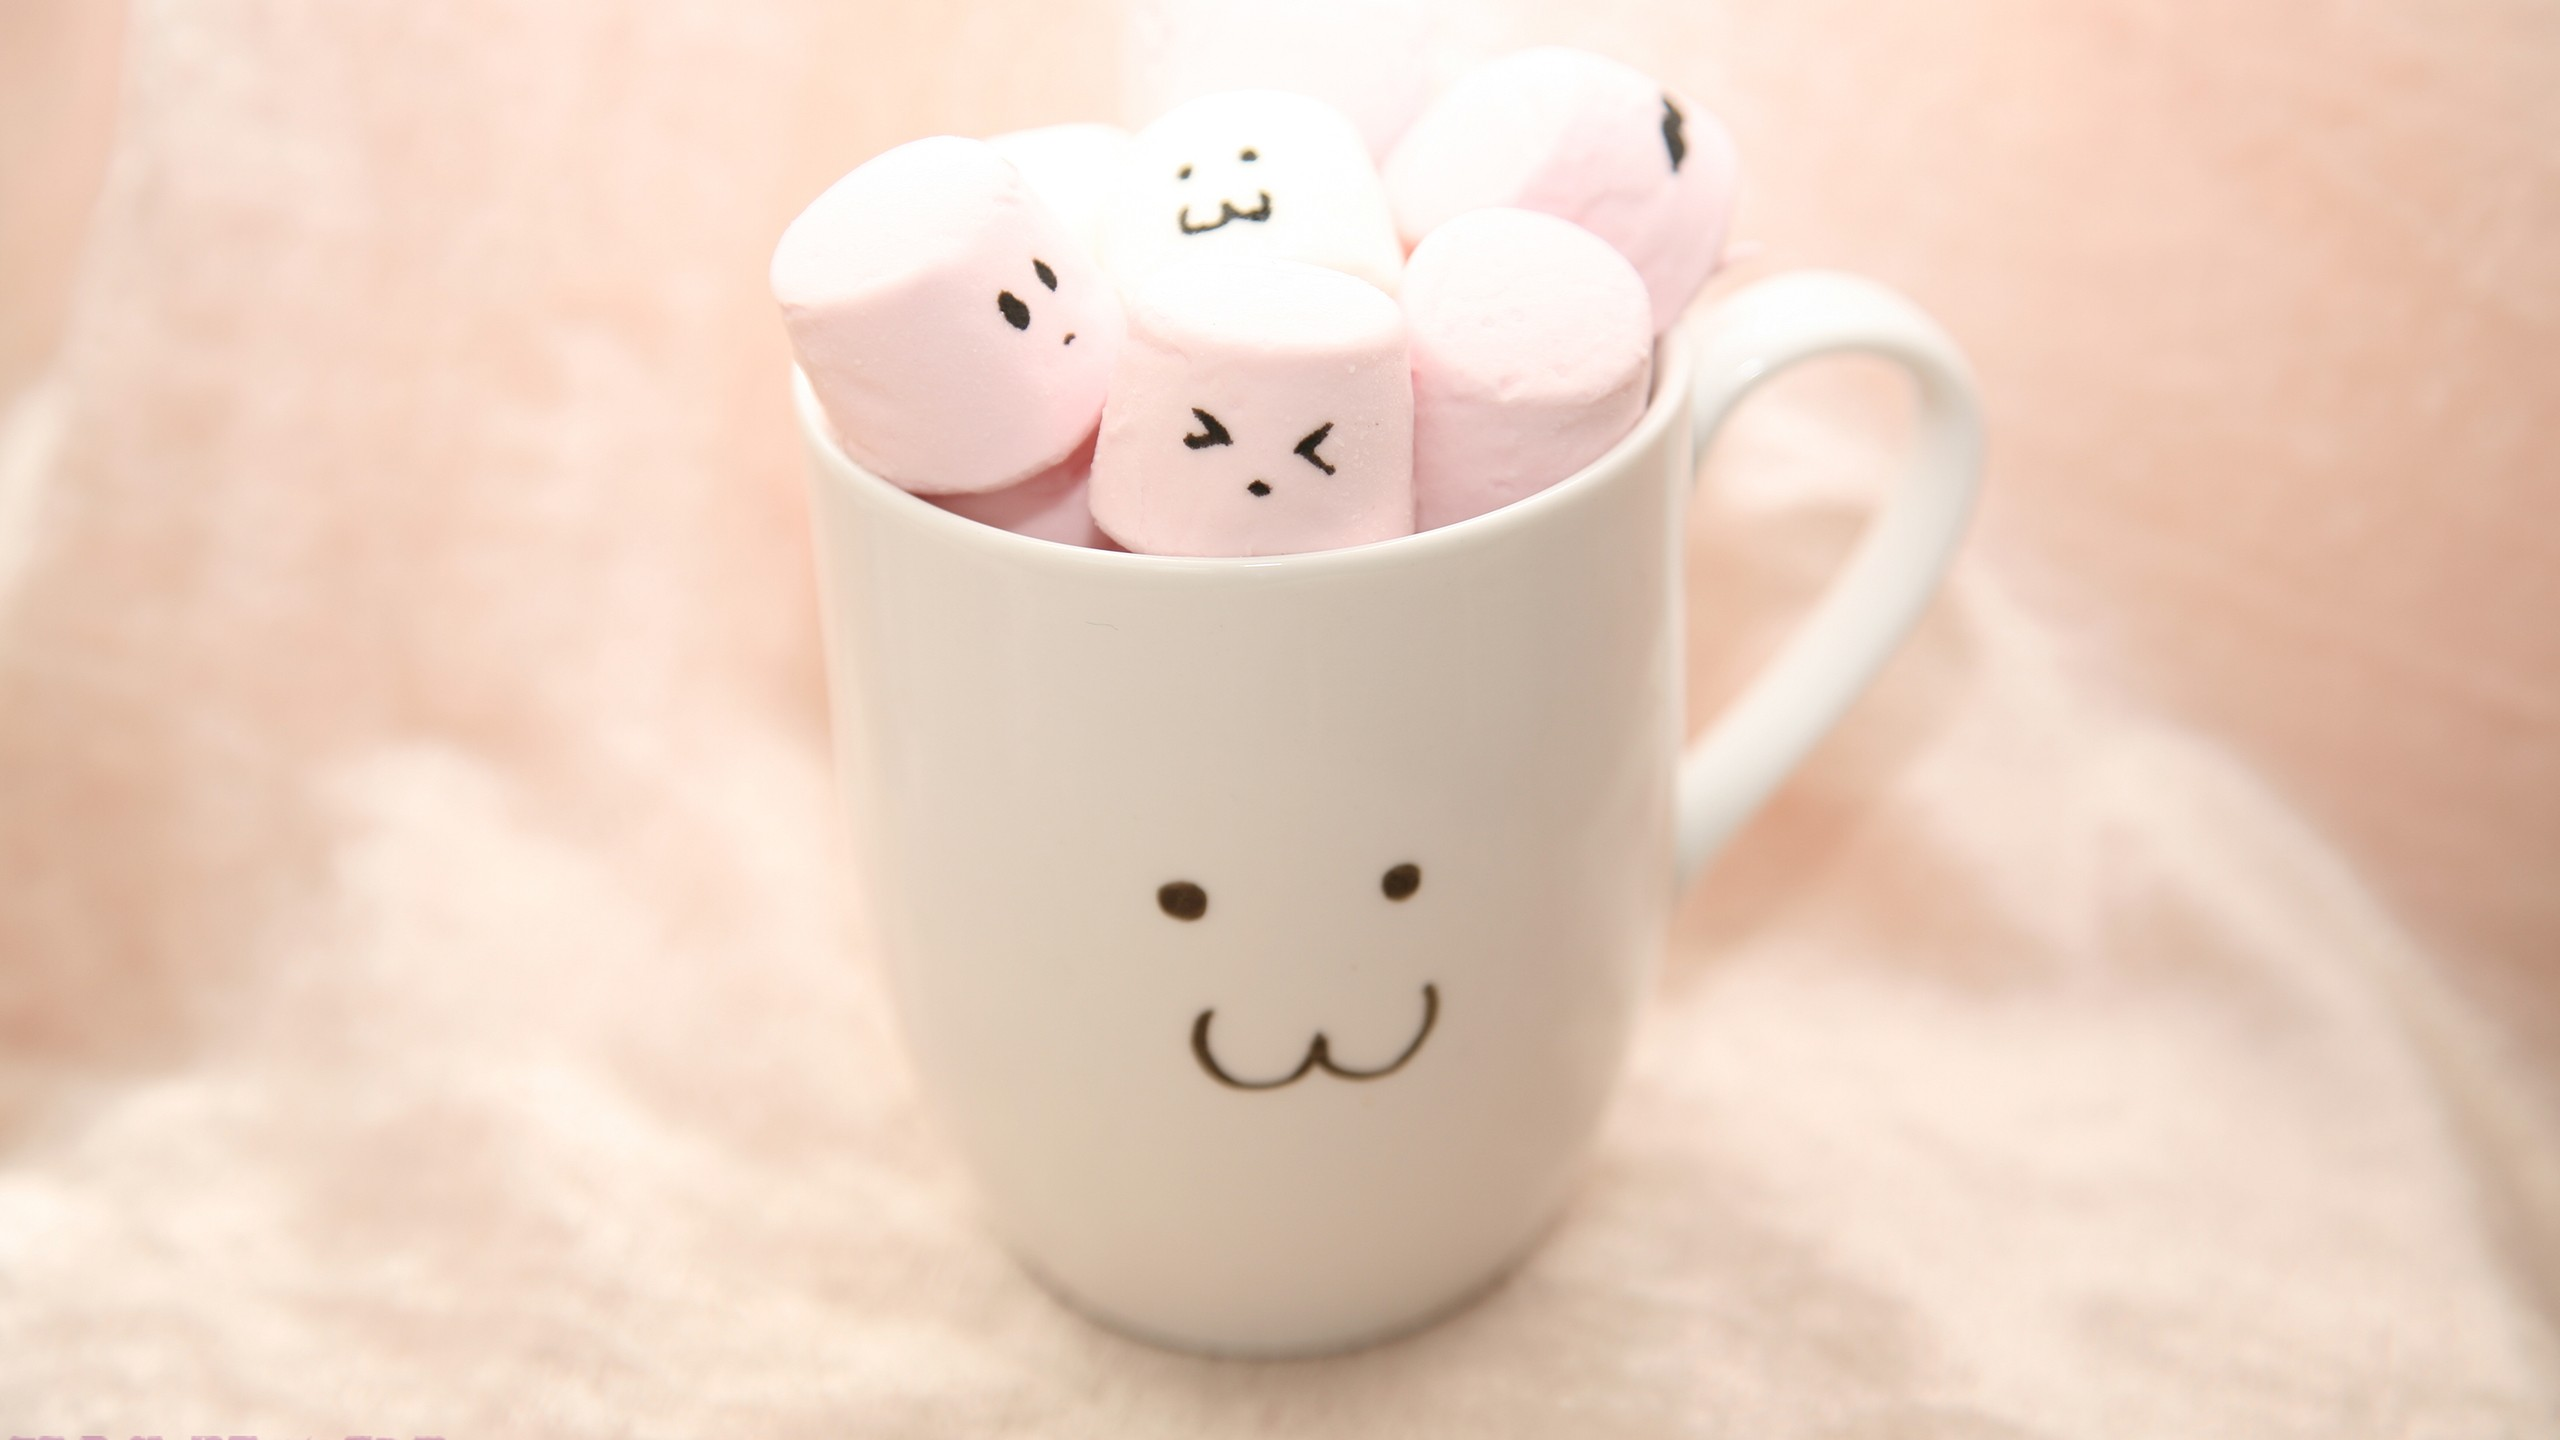 Cute Marshmallow Wallpaper